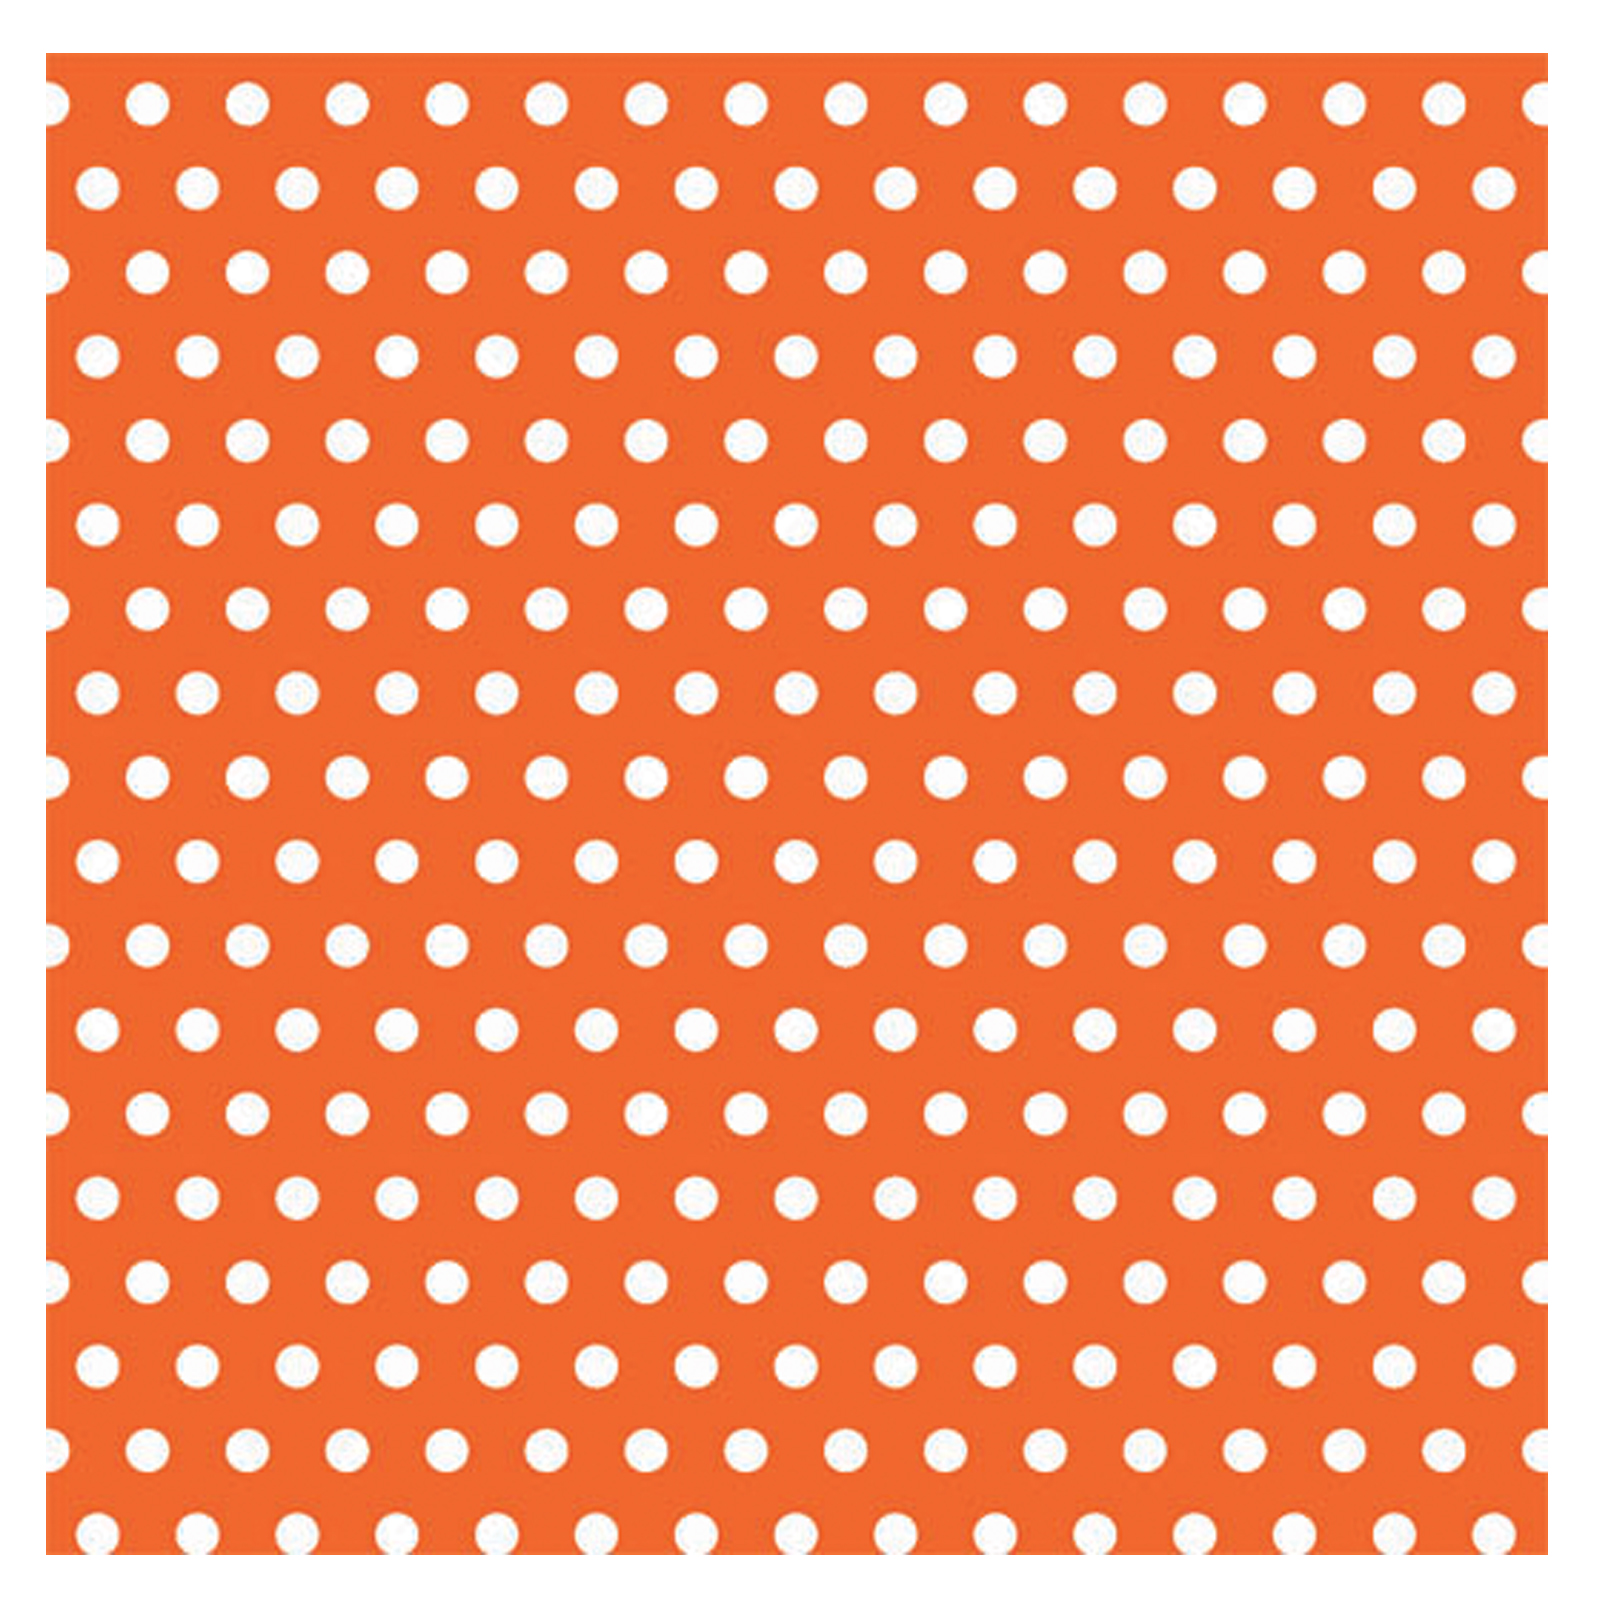 Move Mouse Away From Product Sesame Street Polka Dot Background